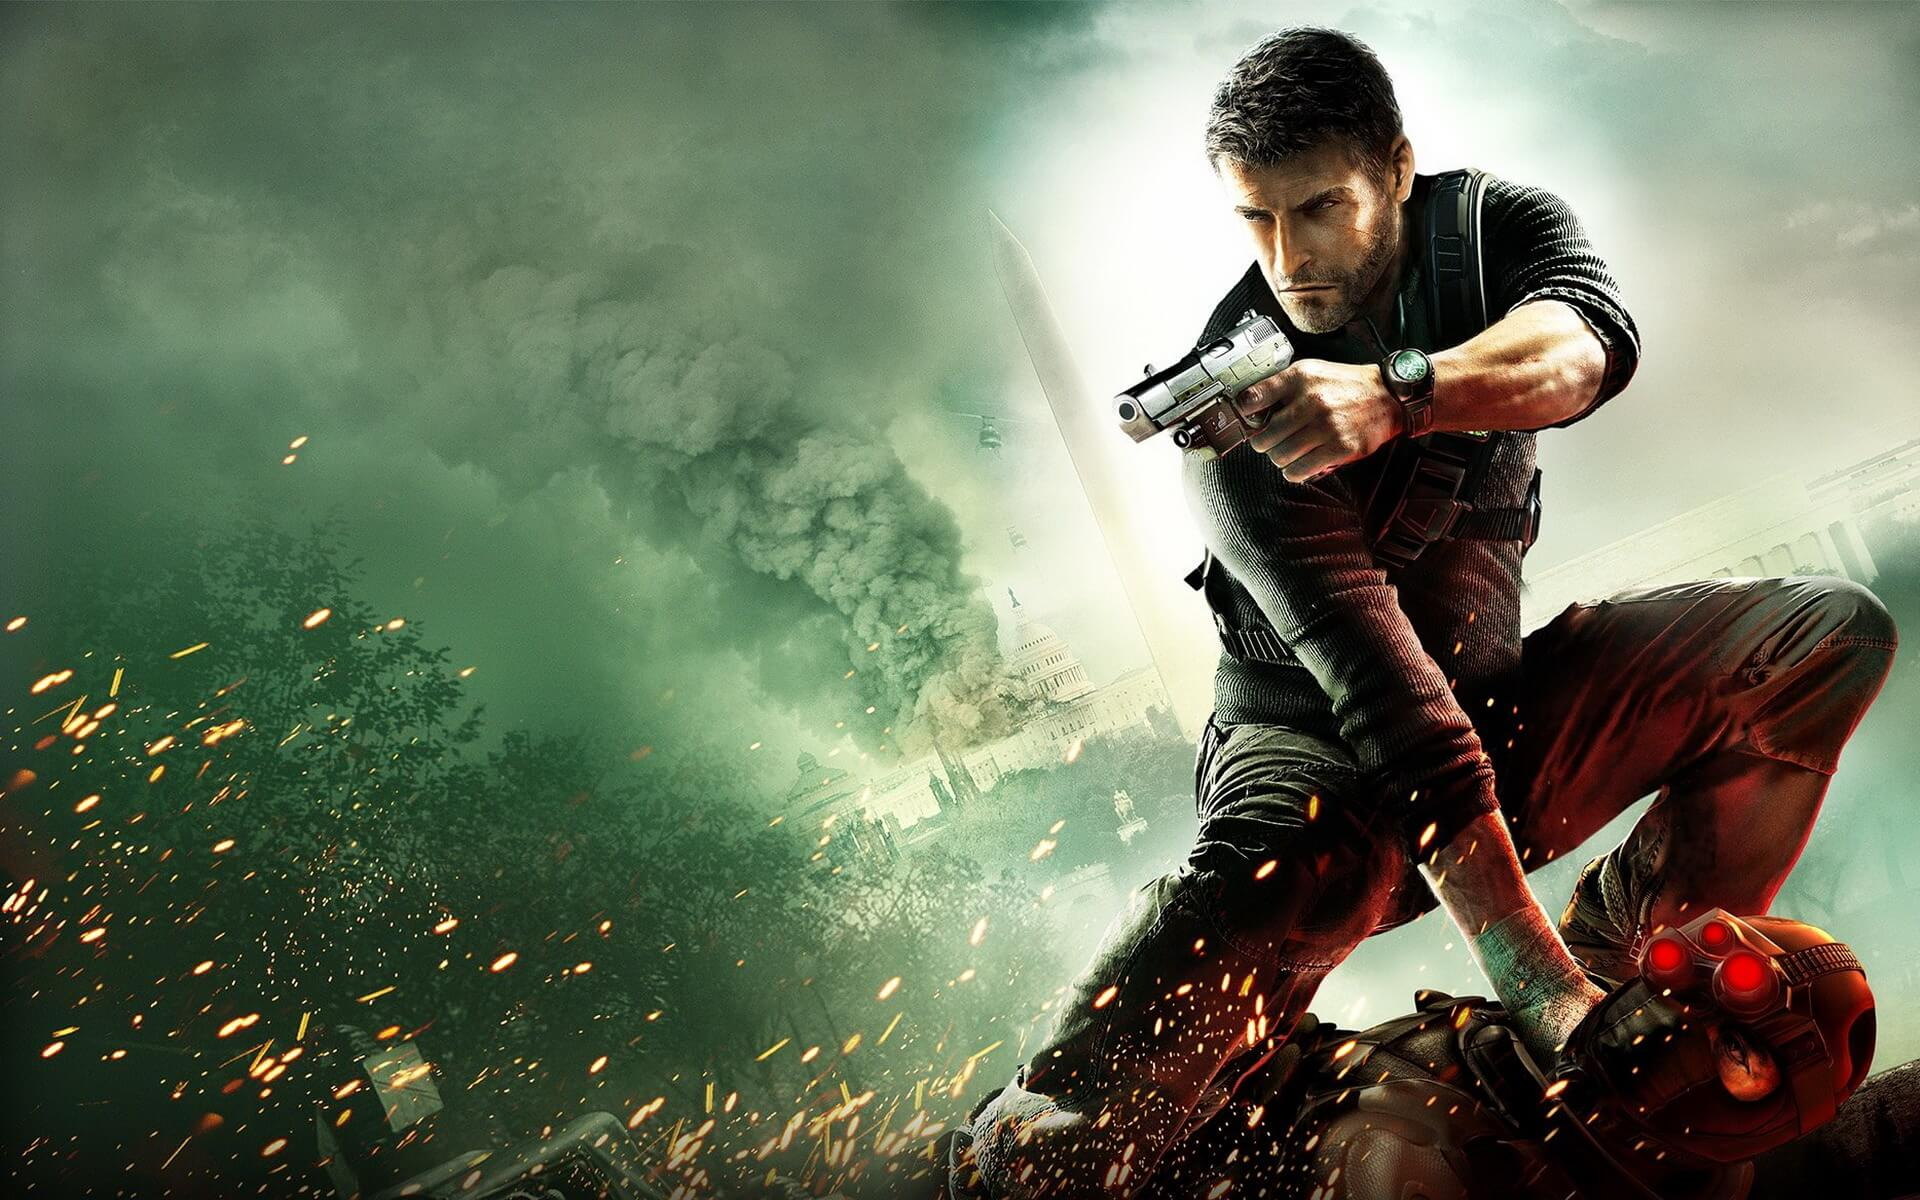 Splinter Cell: Conviction Cheats and Trainers